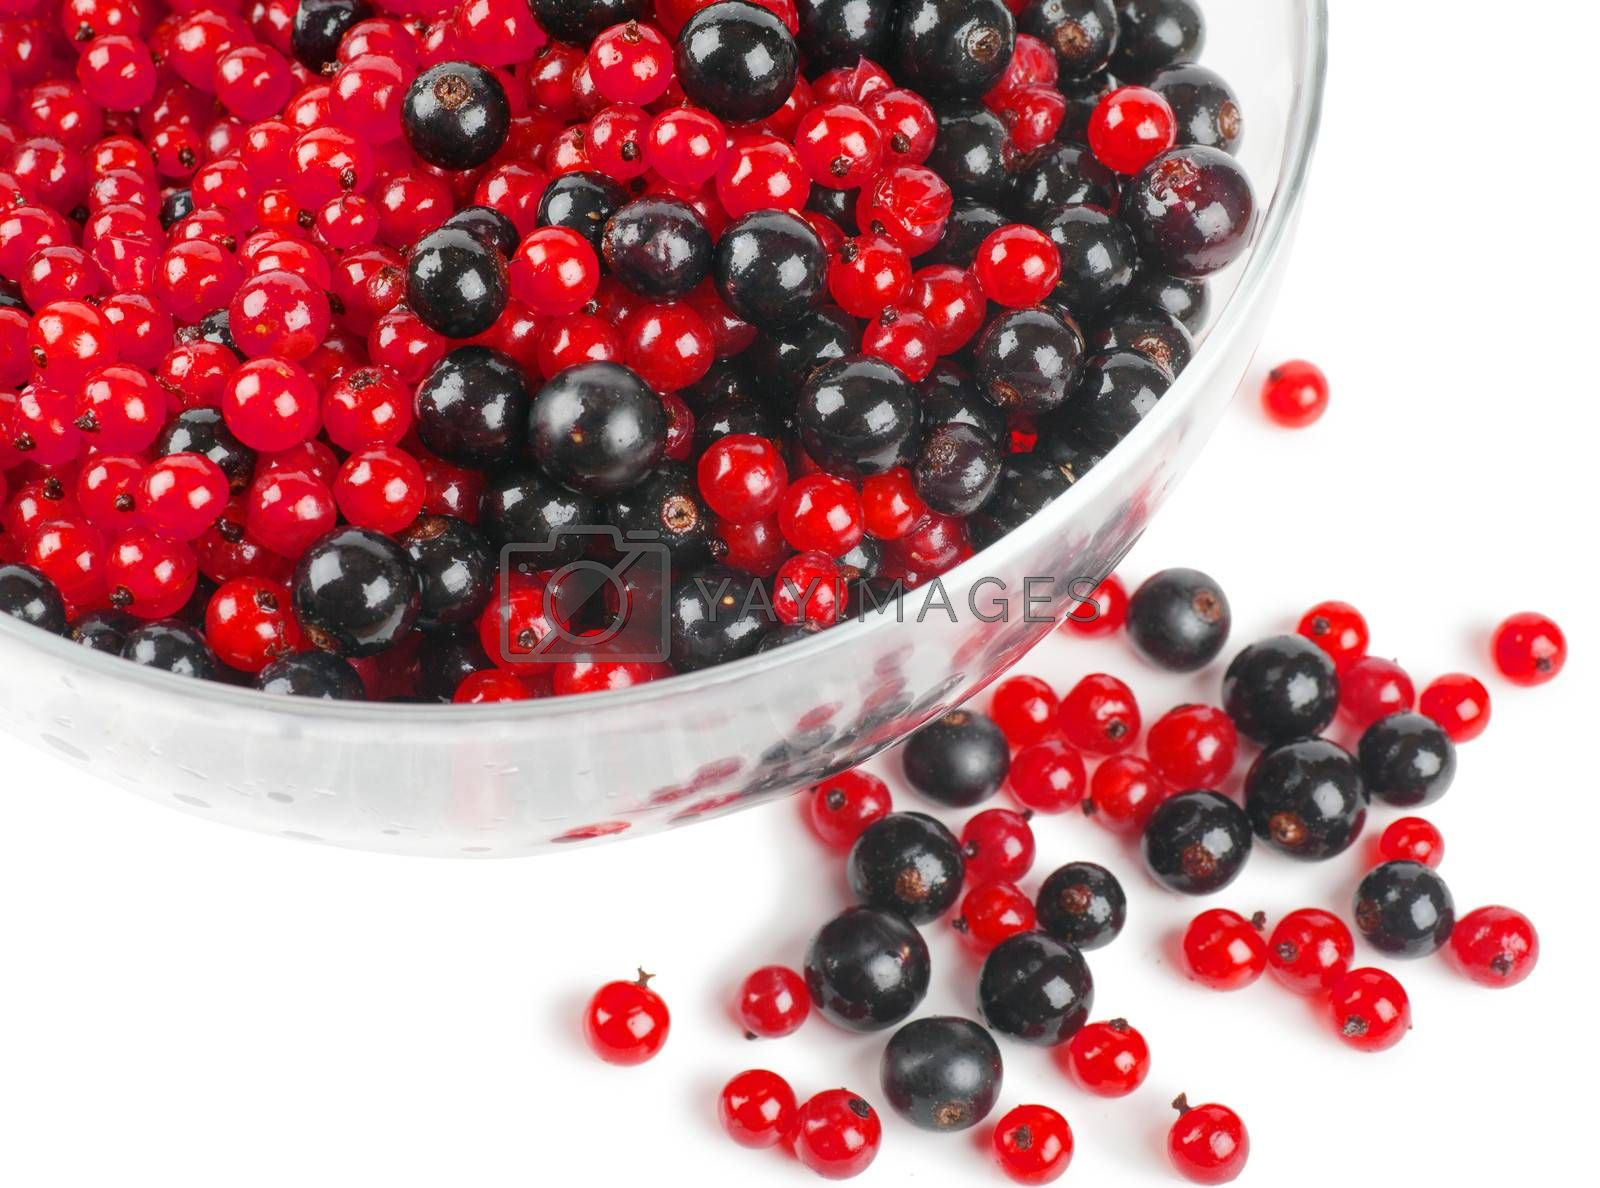 Heap of red and black currants in big bowl